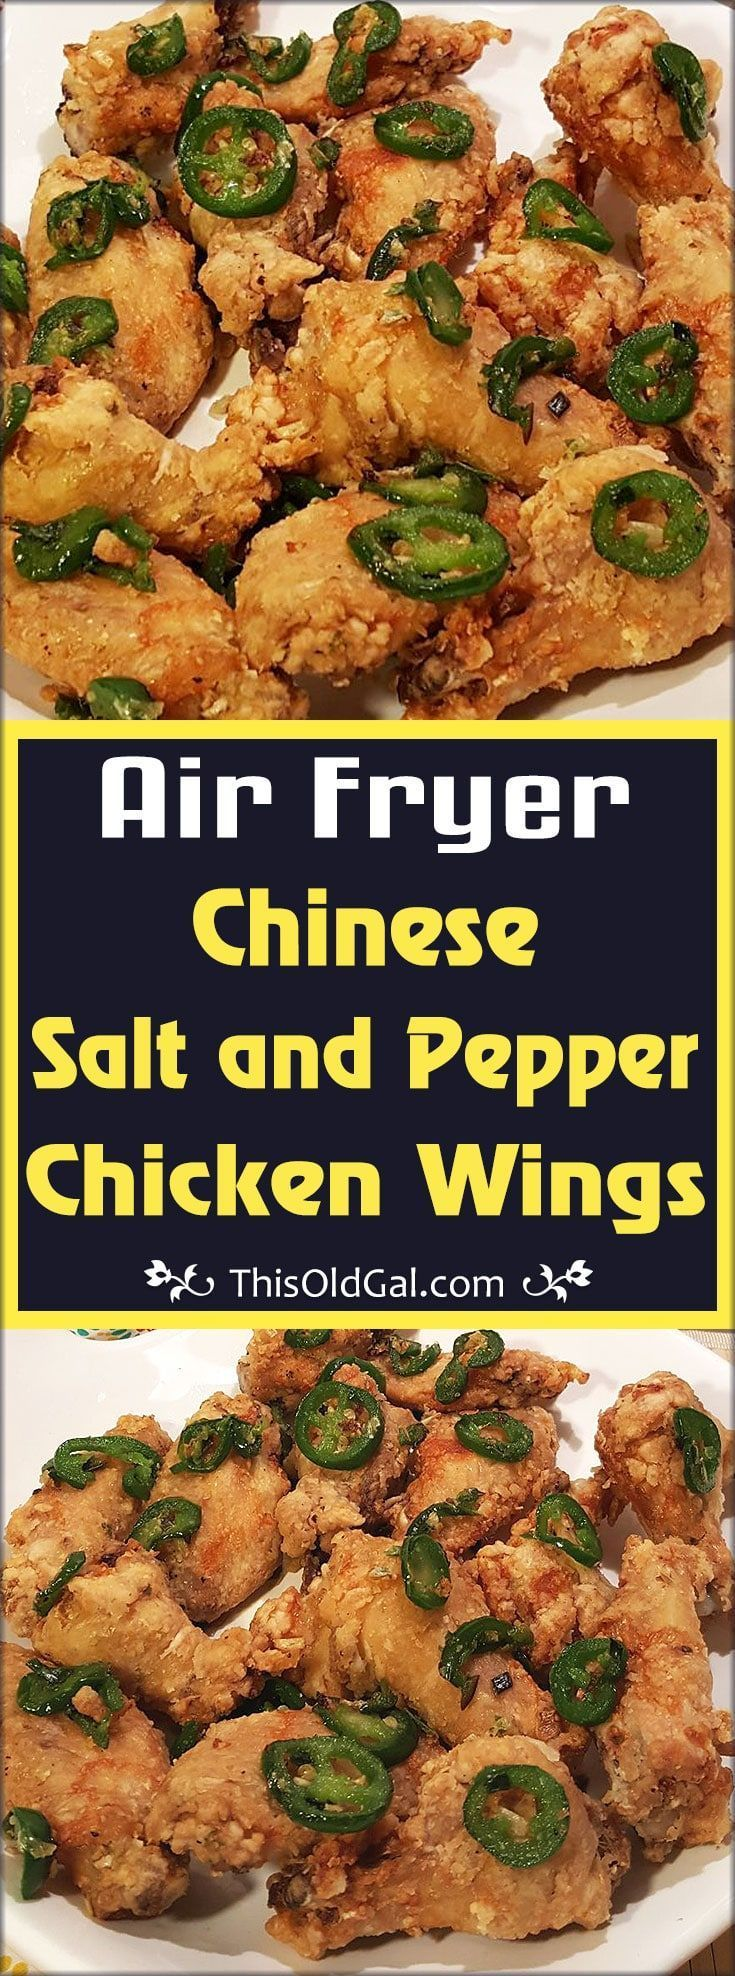 Air Fryer Chinese Salt & Pepper Chicken Wings | This Old Gal